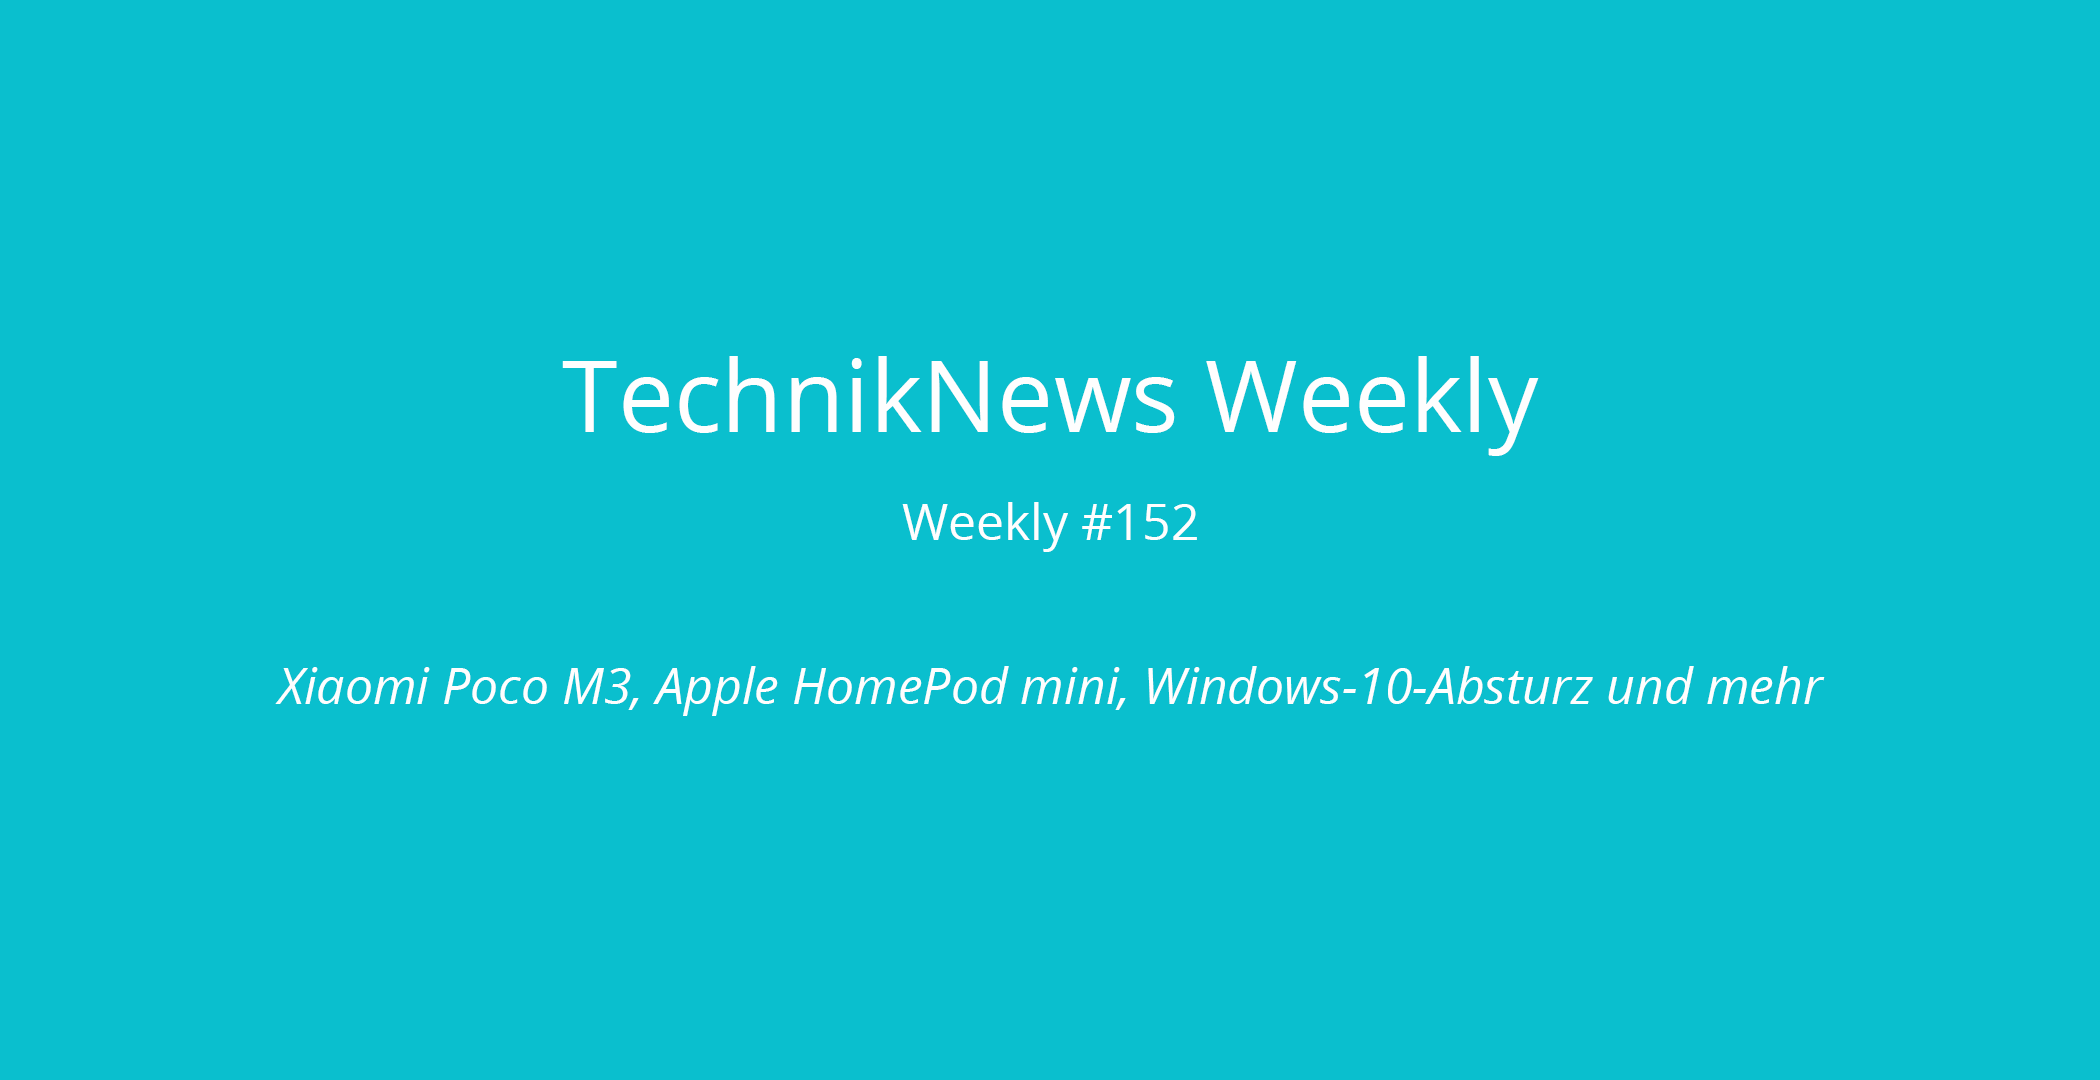 TechnikNews Weekly #152: Xiaomi Poco M3, Apple HomePod mini, Windows-10-Absturz und mehr